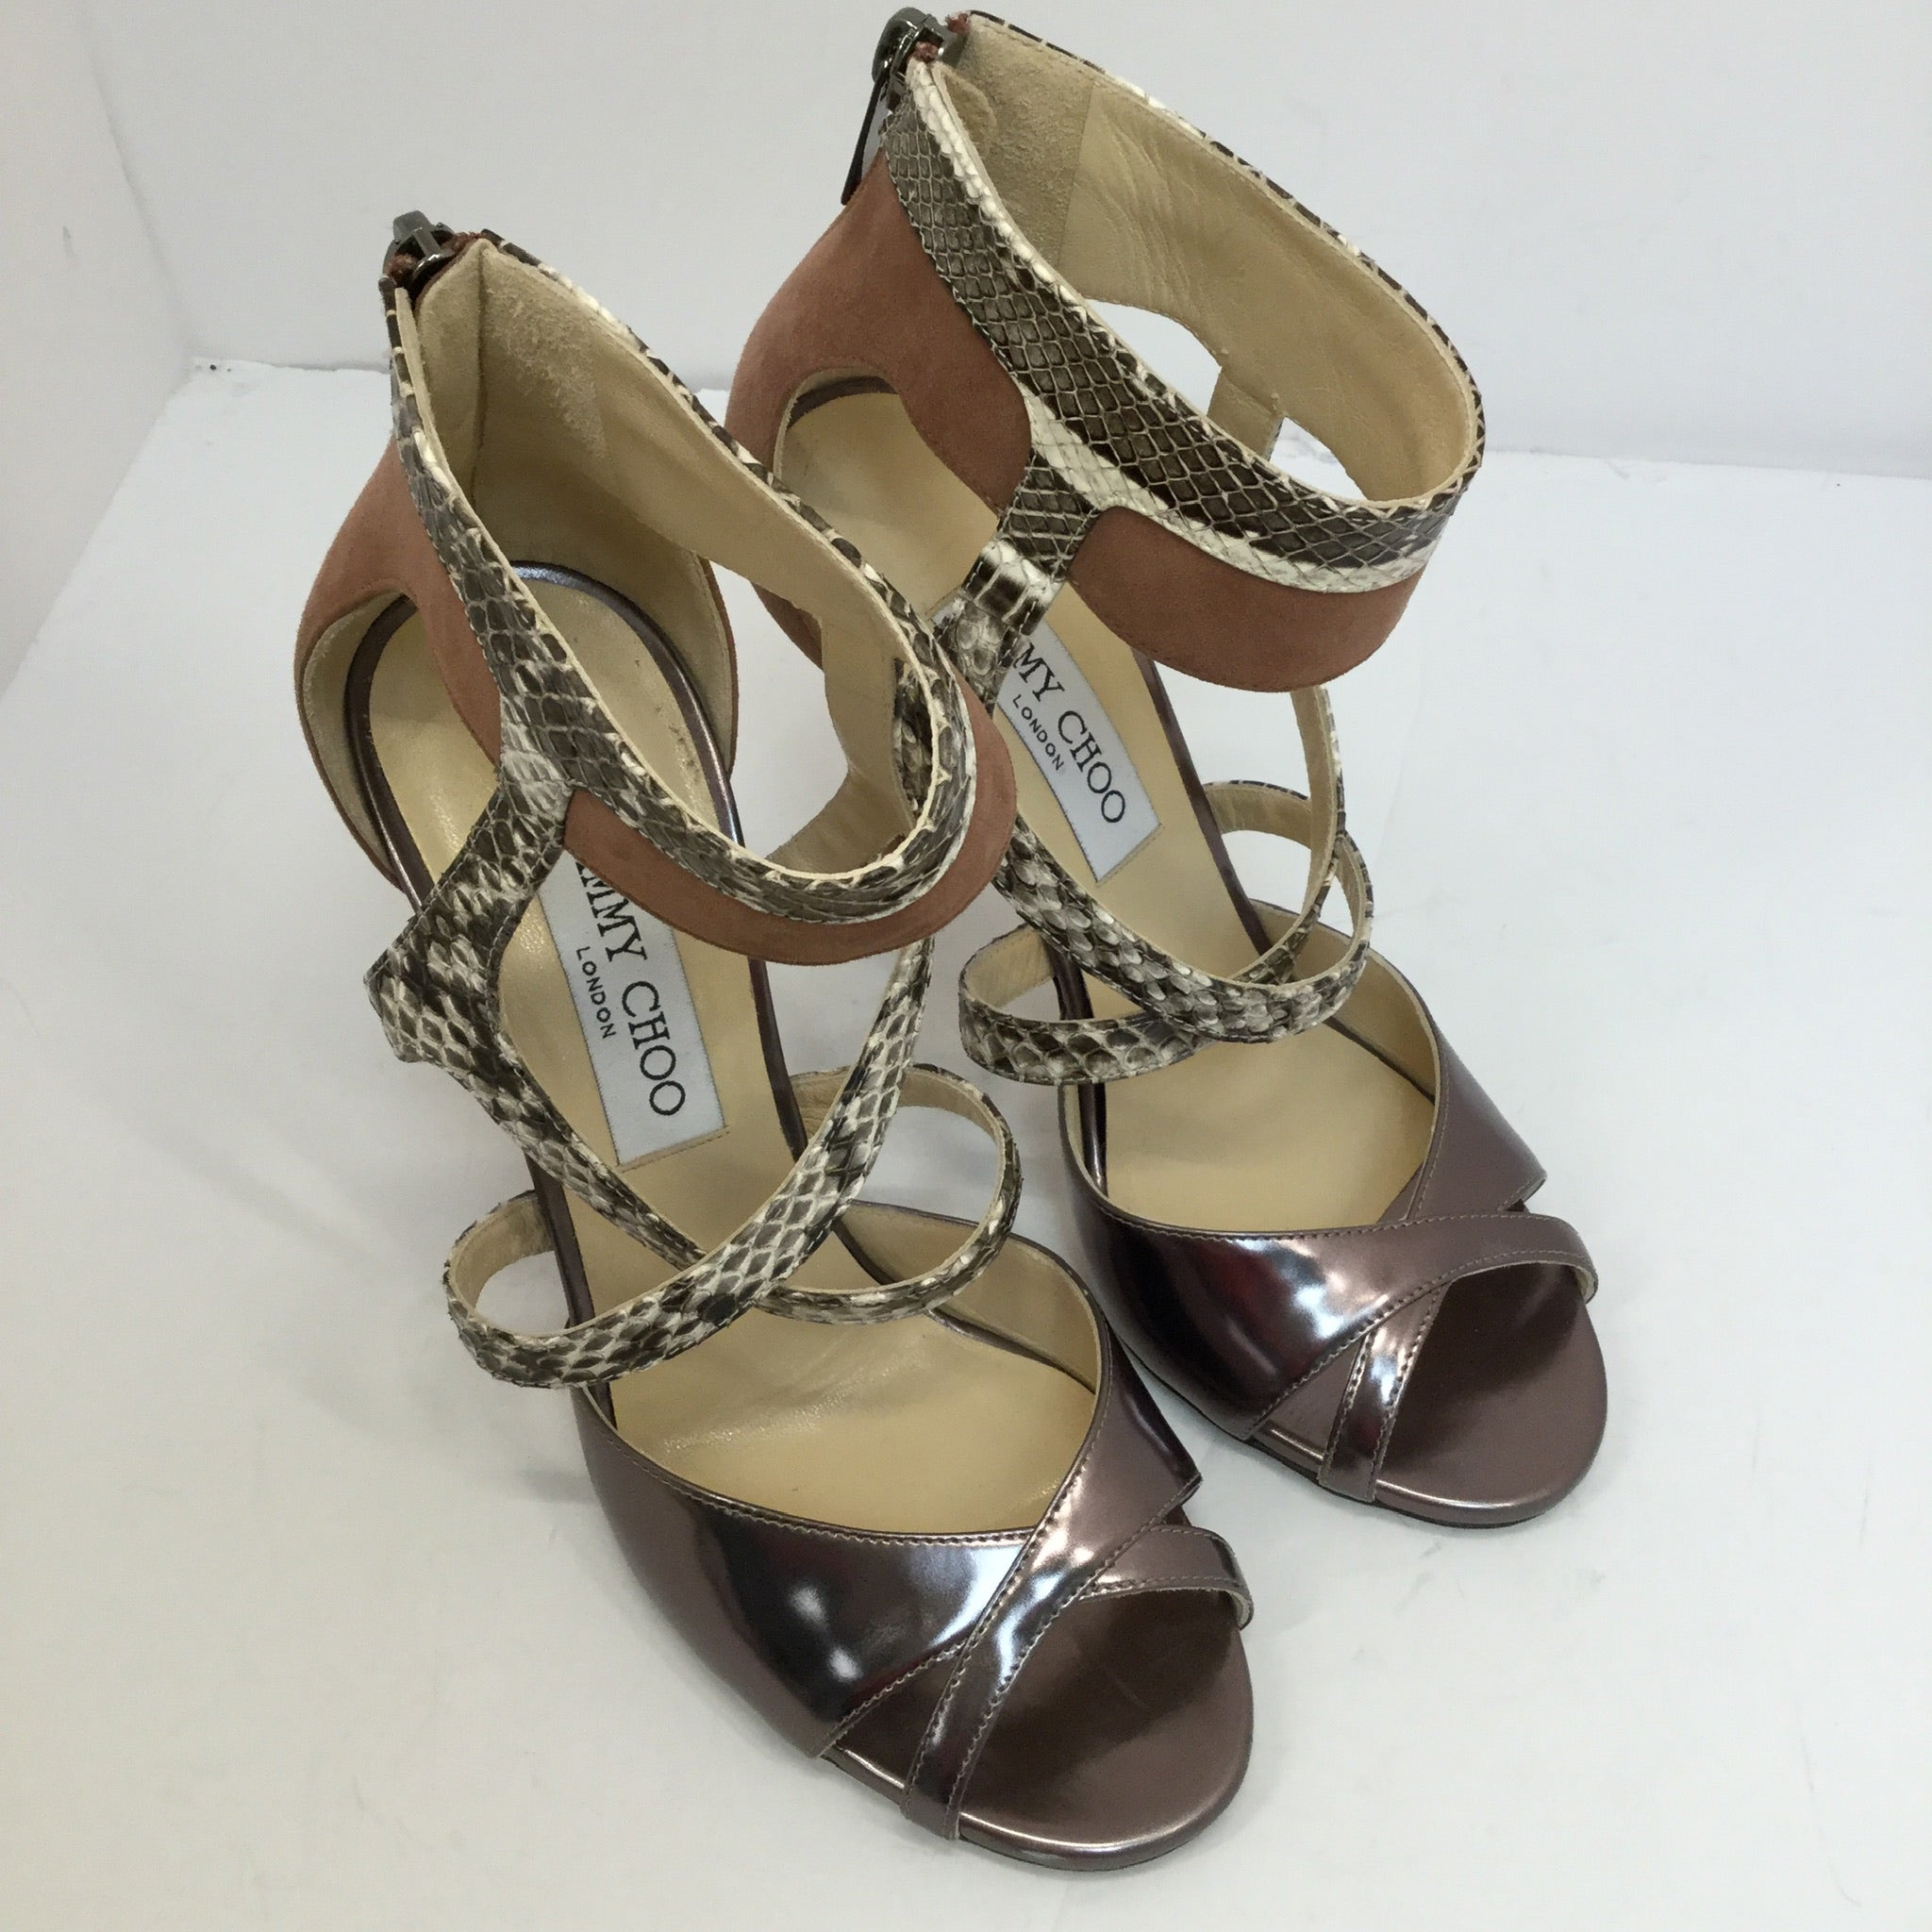 Jimmy Choo Freesia Suede Snakeskin Strappy Sandals - size 37